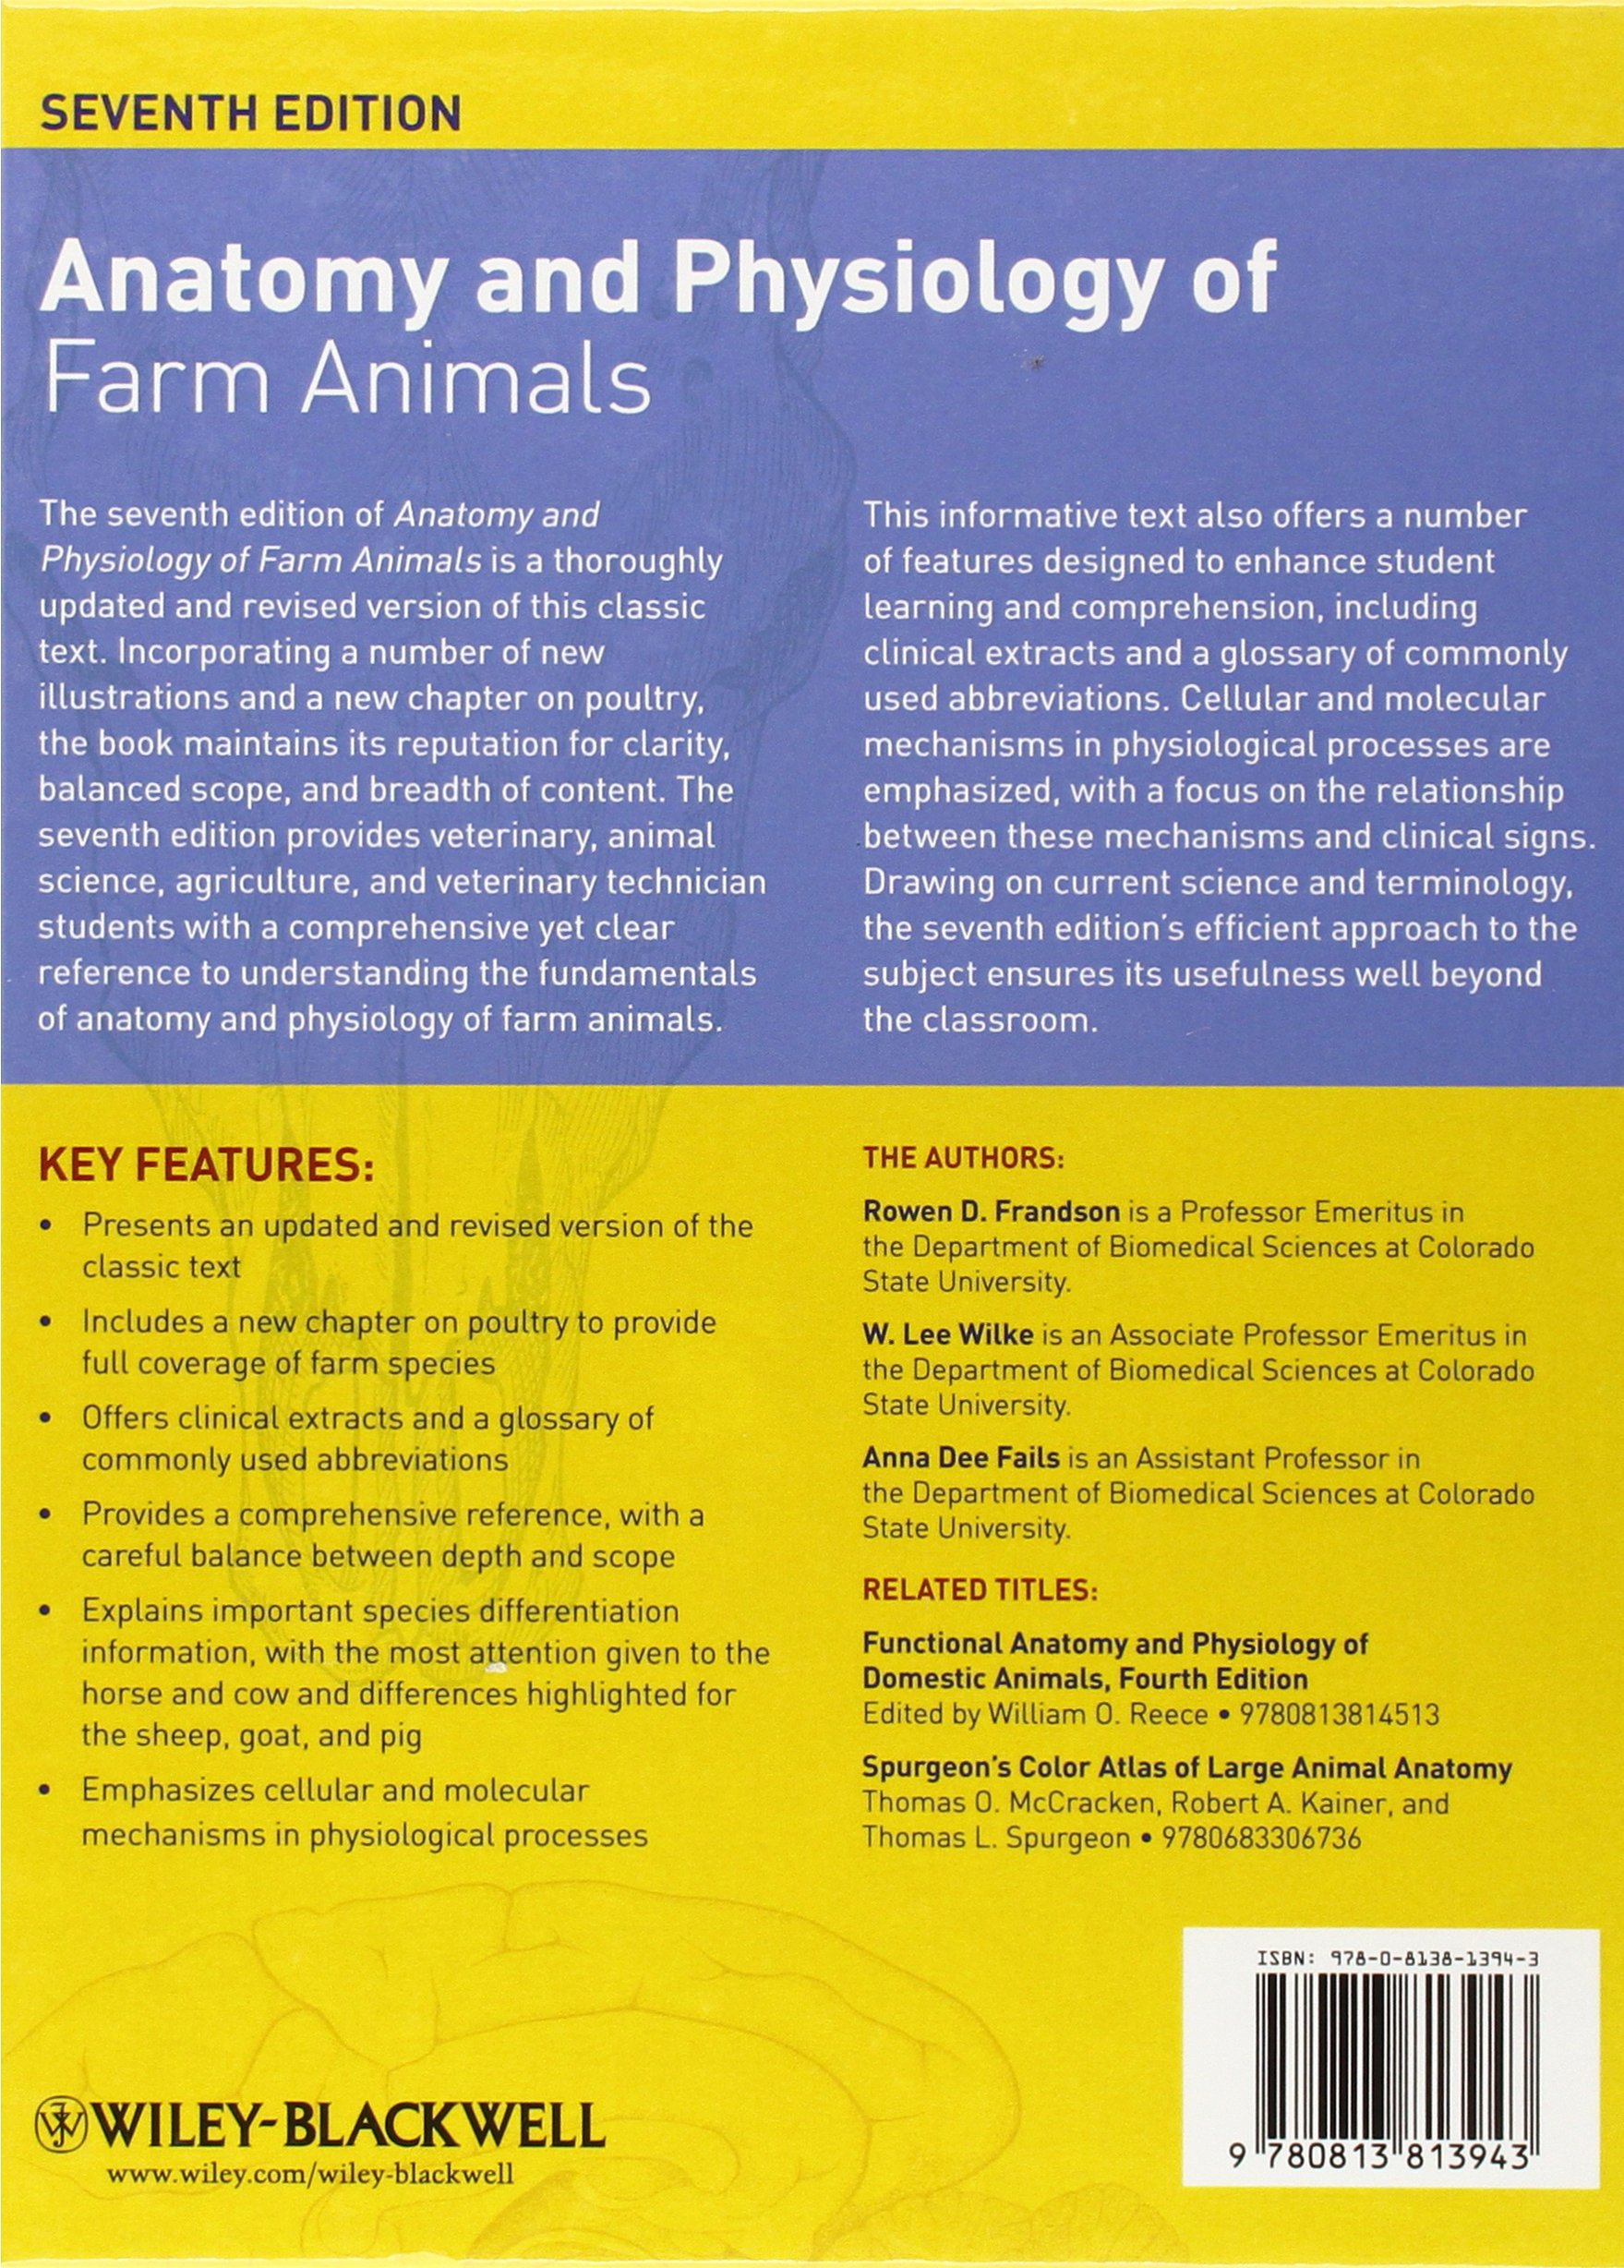 Anatomy and Physiology of Farm Animals: Amazon.co.uk: Rowen D ...